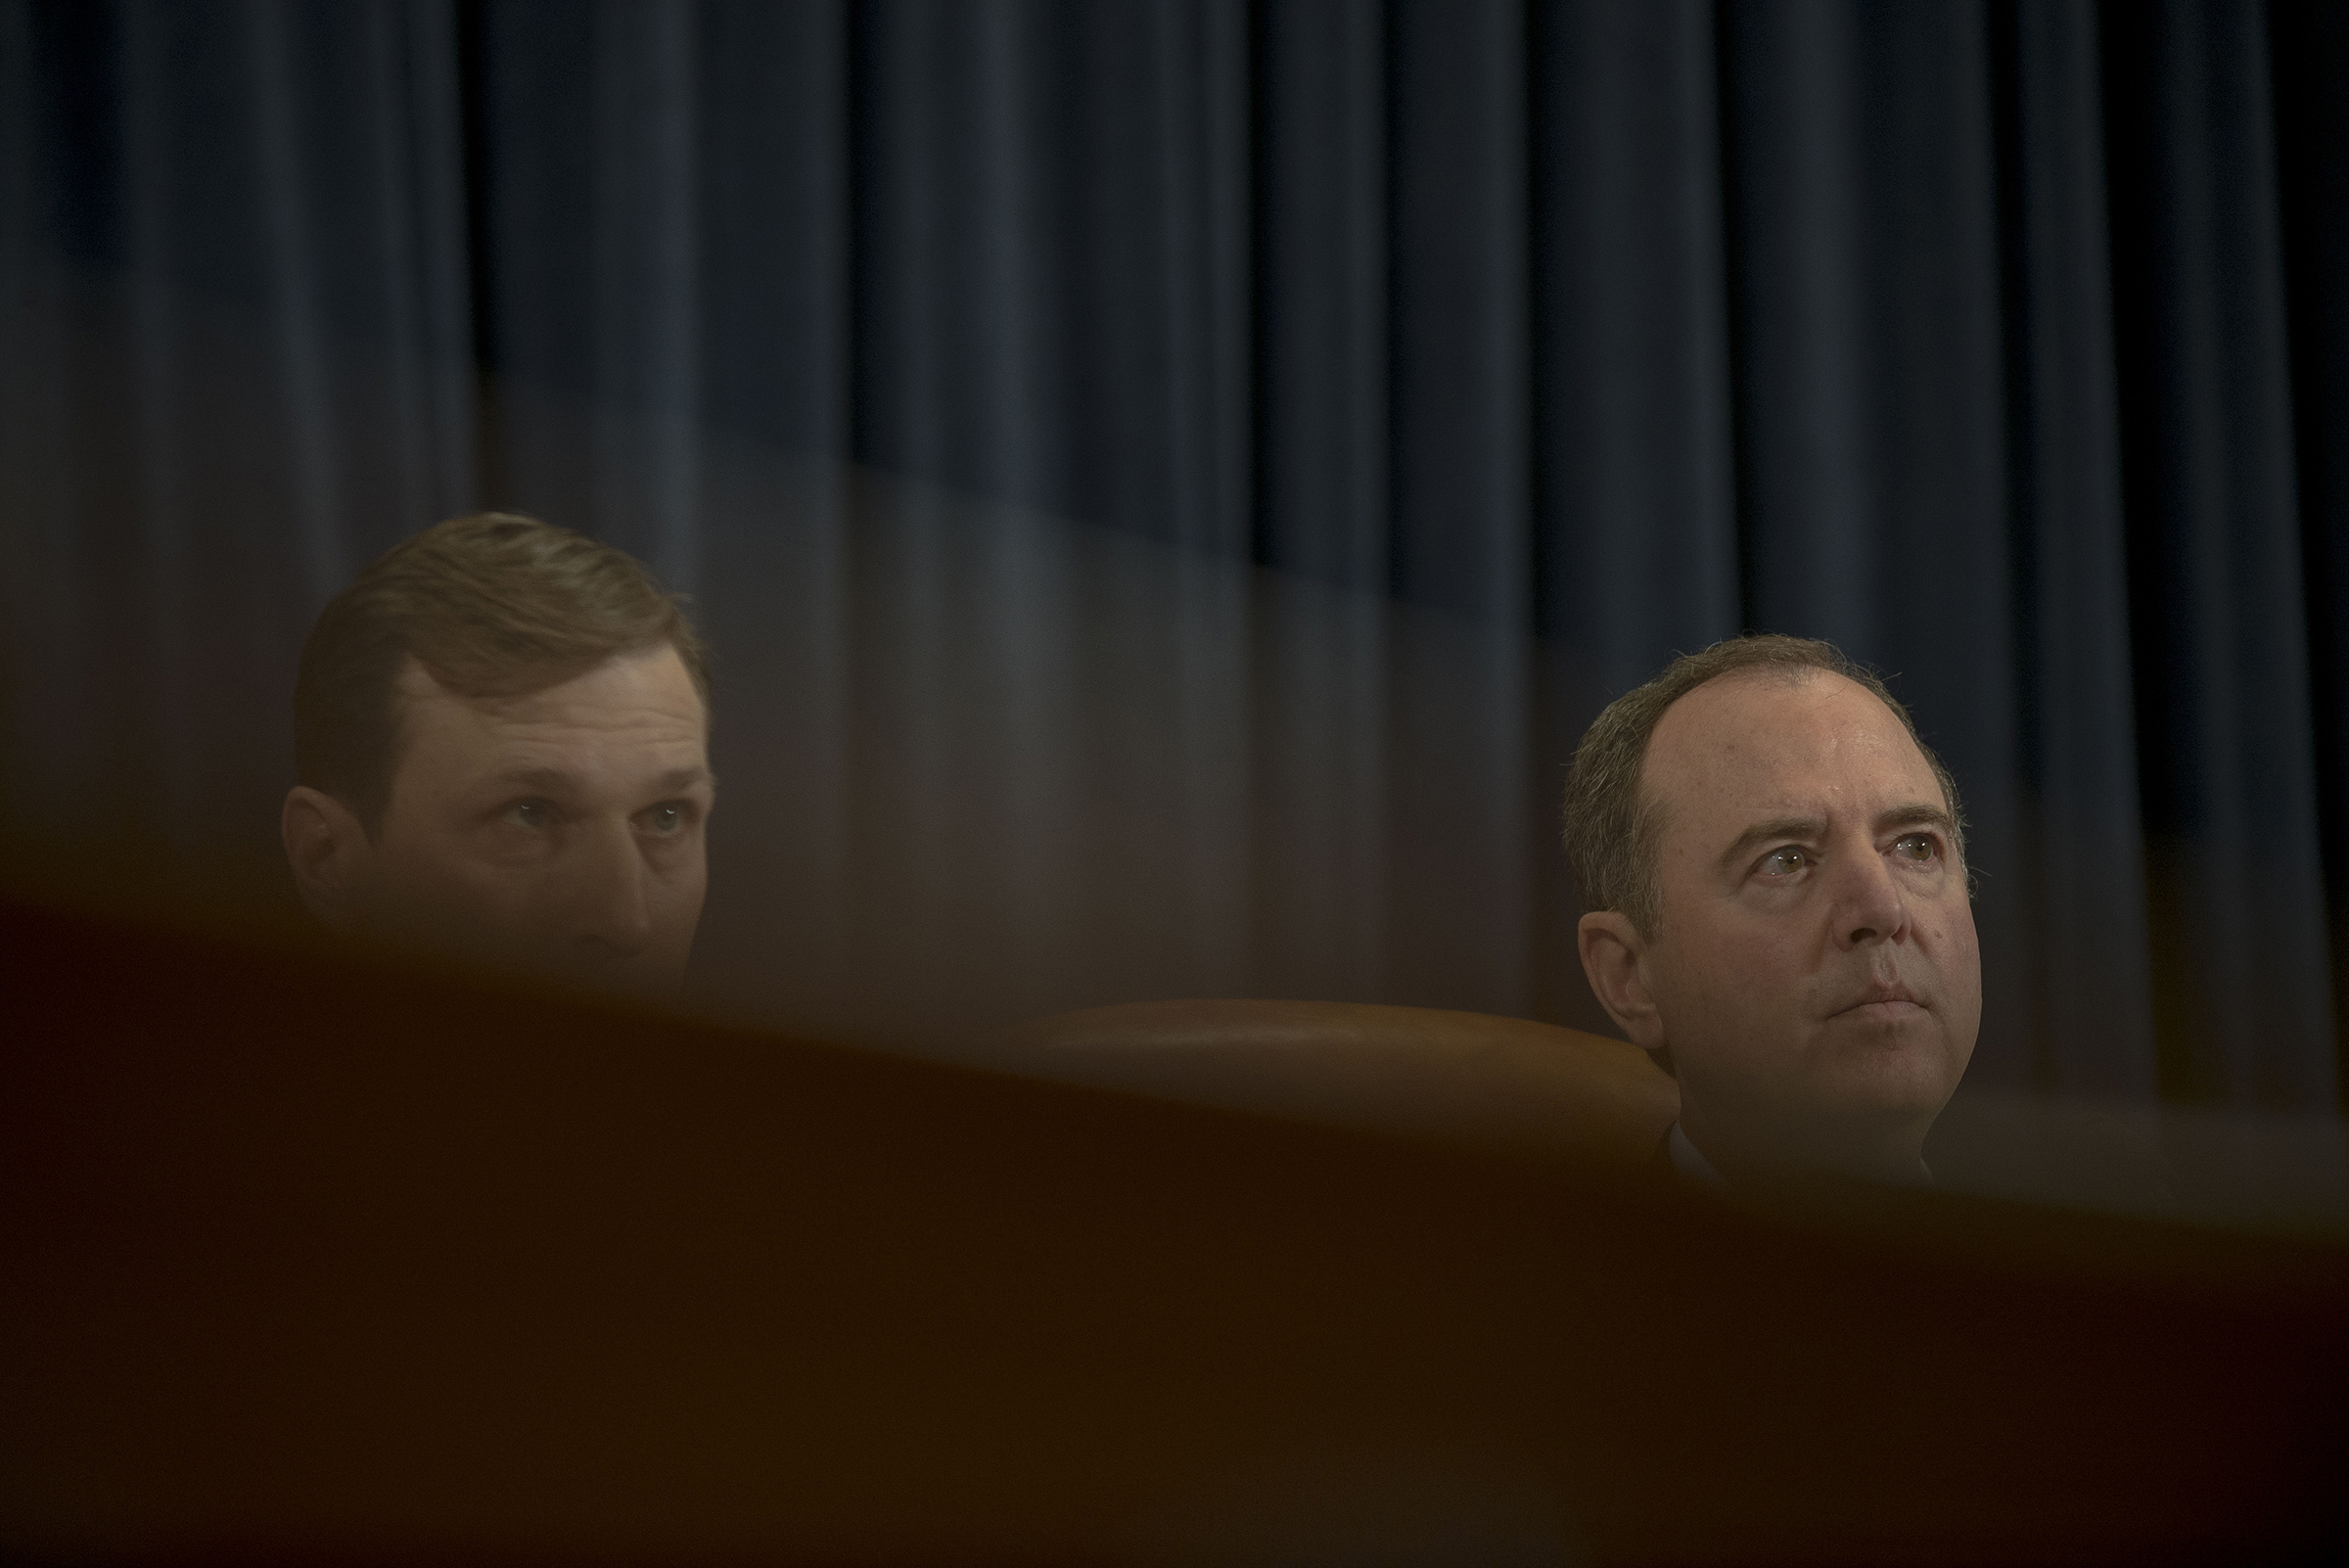 Chairman Adam Schiff (D-Calif.) and Democratic counsel Daniel Goldman listen to Ambassador Gordon Sondland testify during the House Intelligence Committee hearing on the impeachment inquiry on Capitol Hill in Washington, D.C. on Nov. 20, 2019.